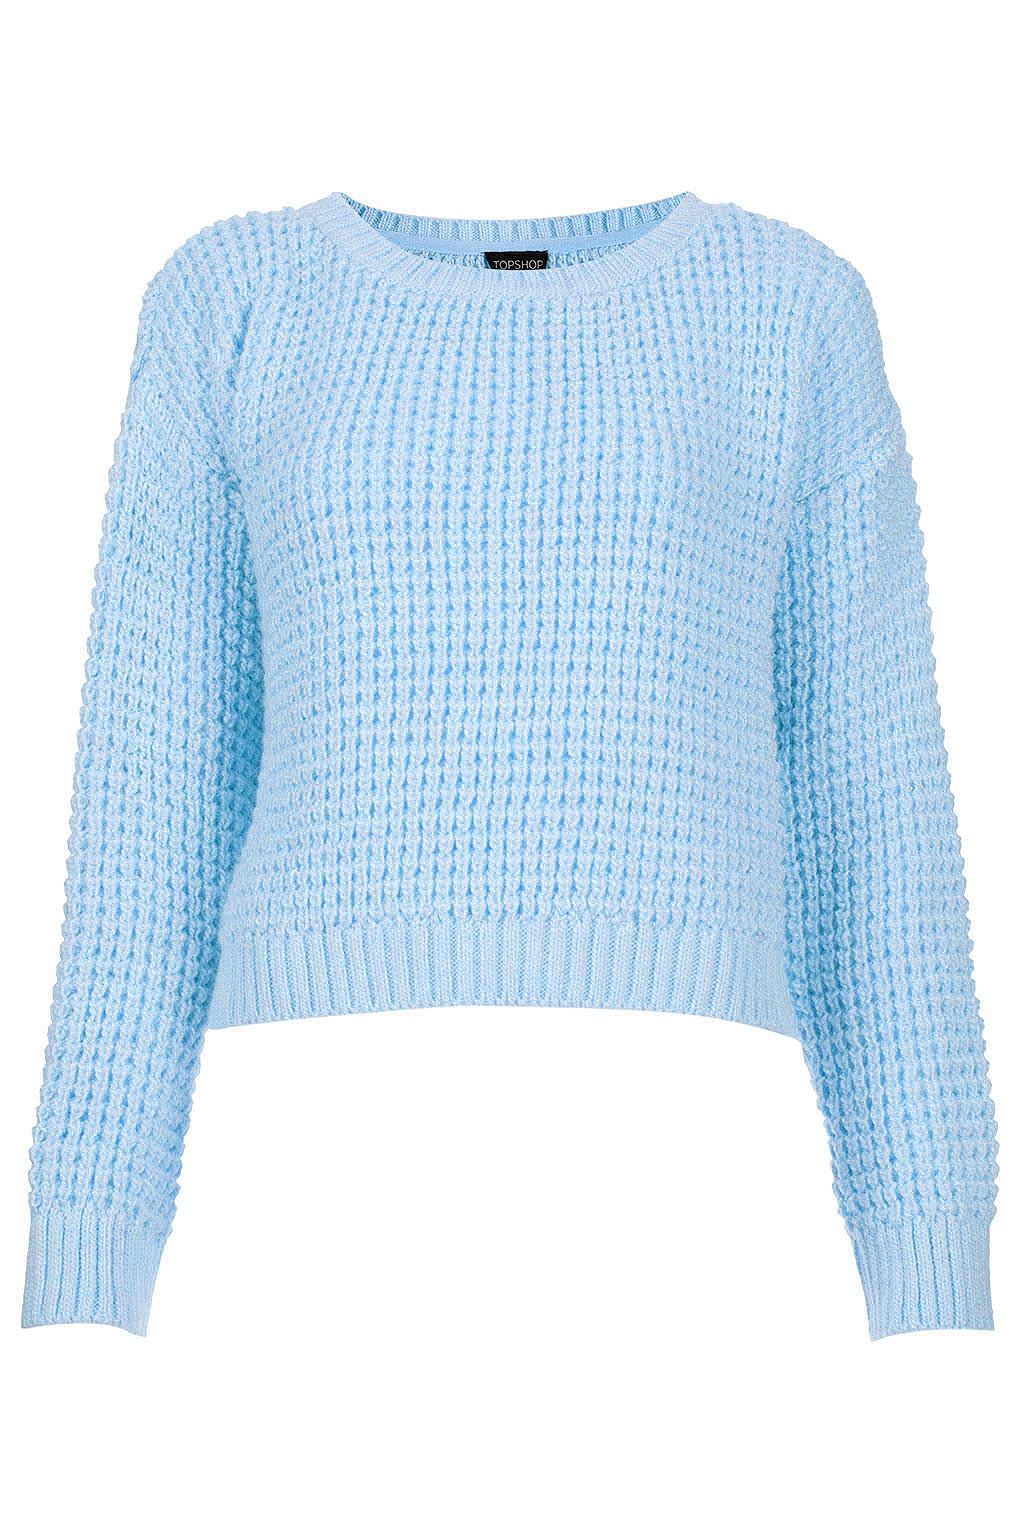 pastel blue knitted cropped jumper-topshop | c: | Pinterest ...